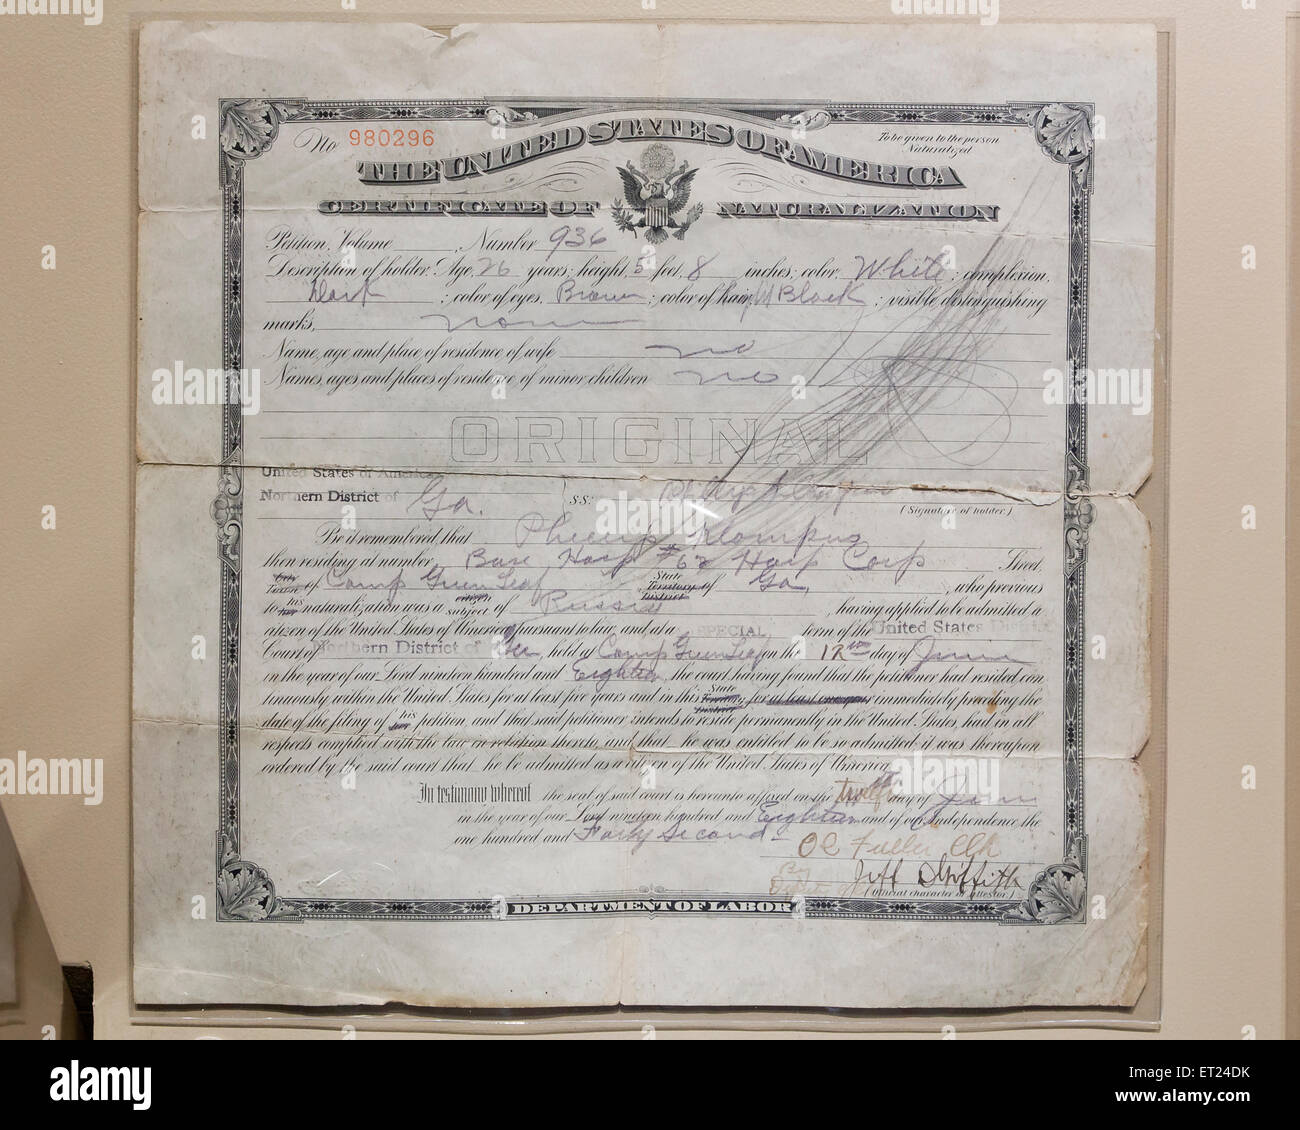 Vintage Certificate of Naturalization, circa 1930s - USA - Stock Image